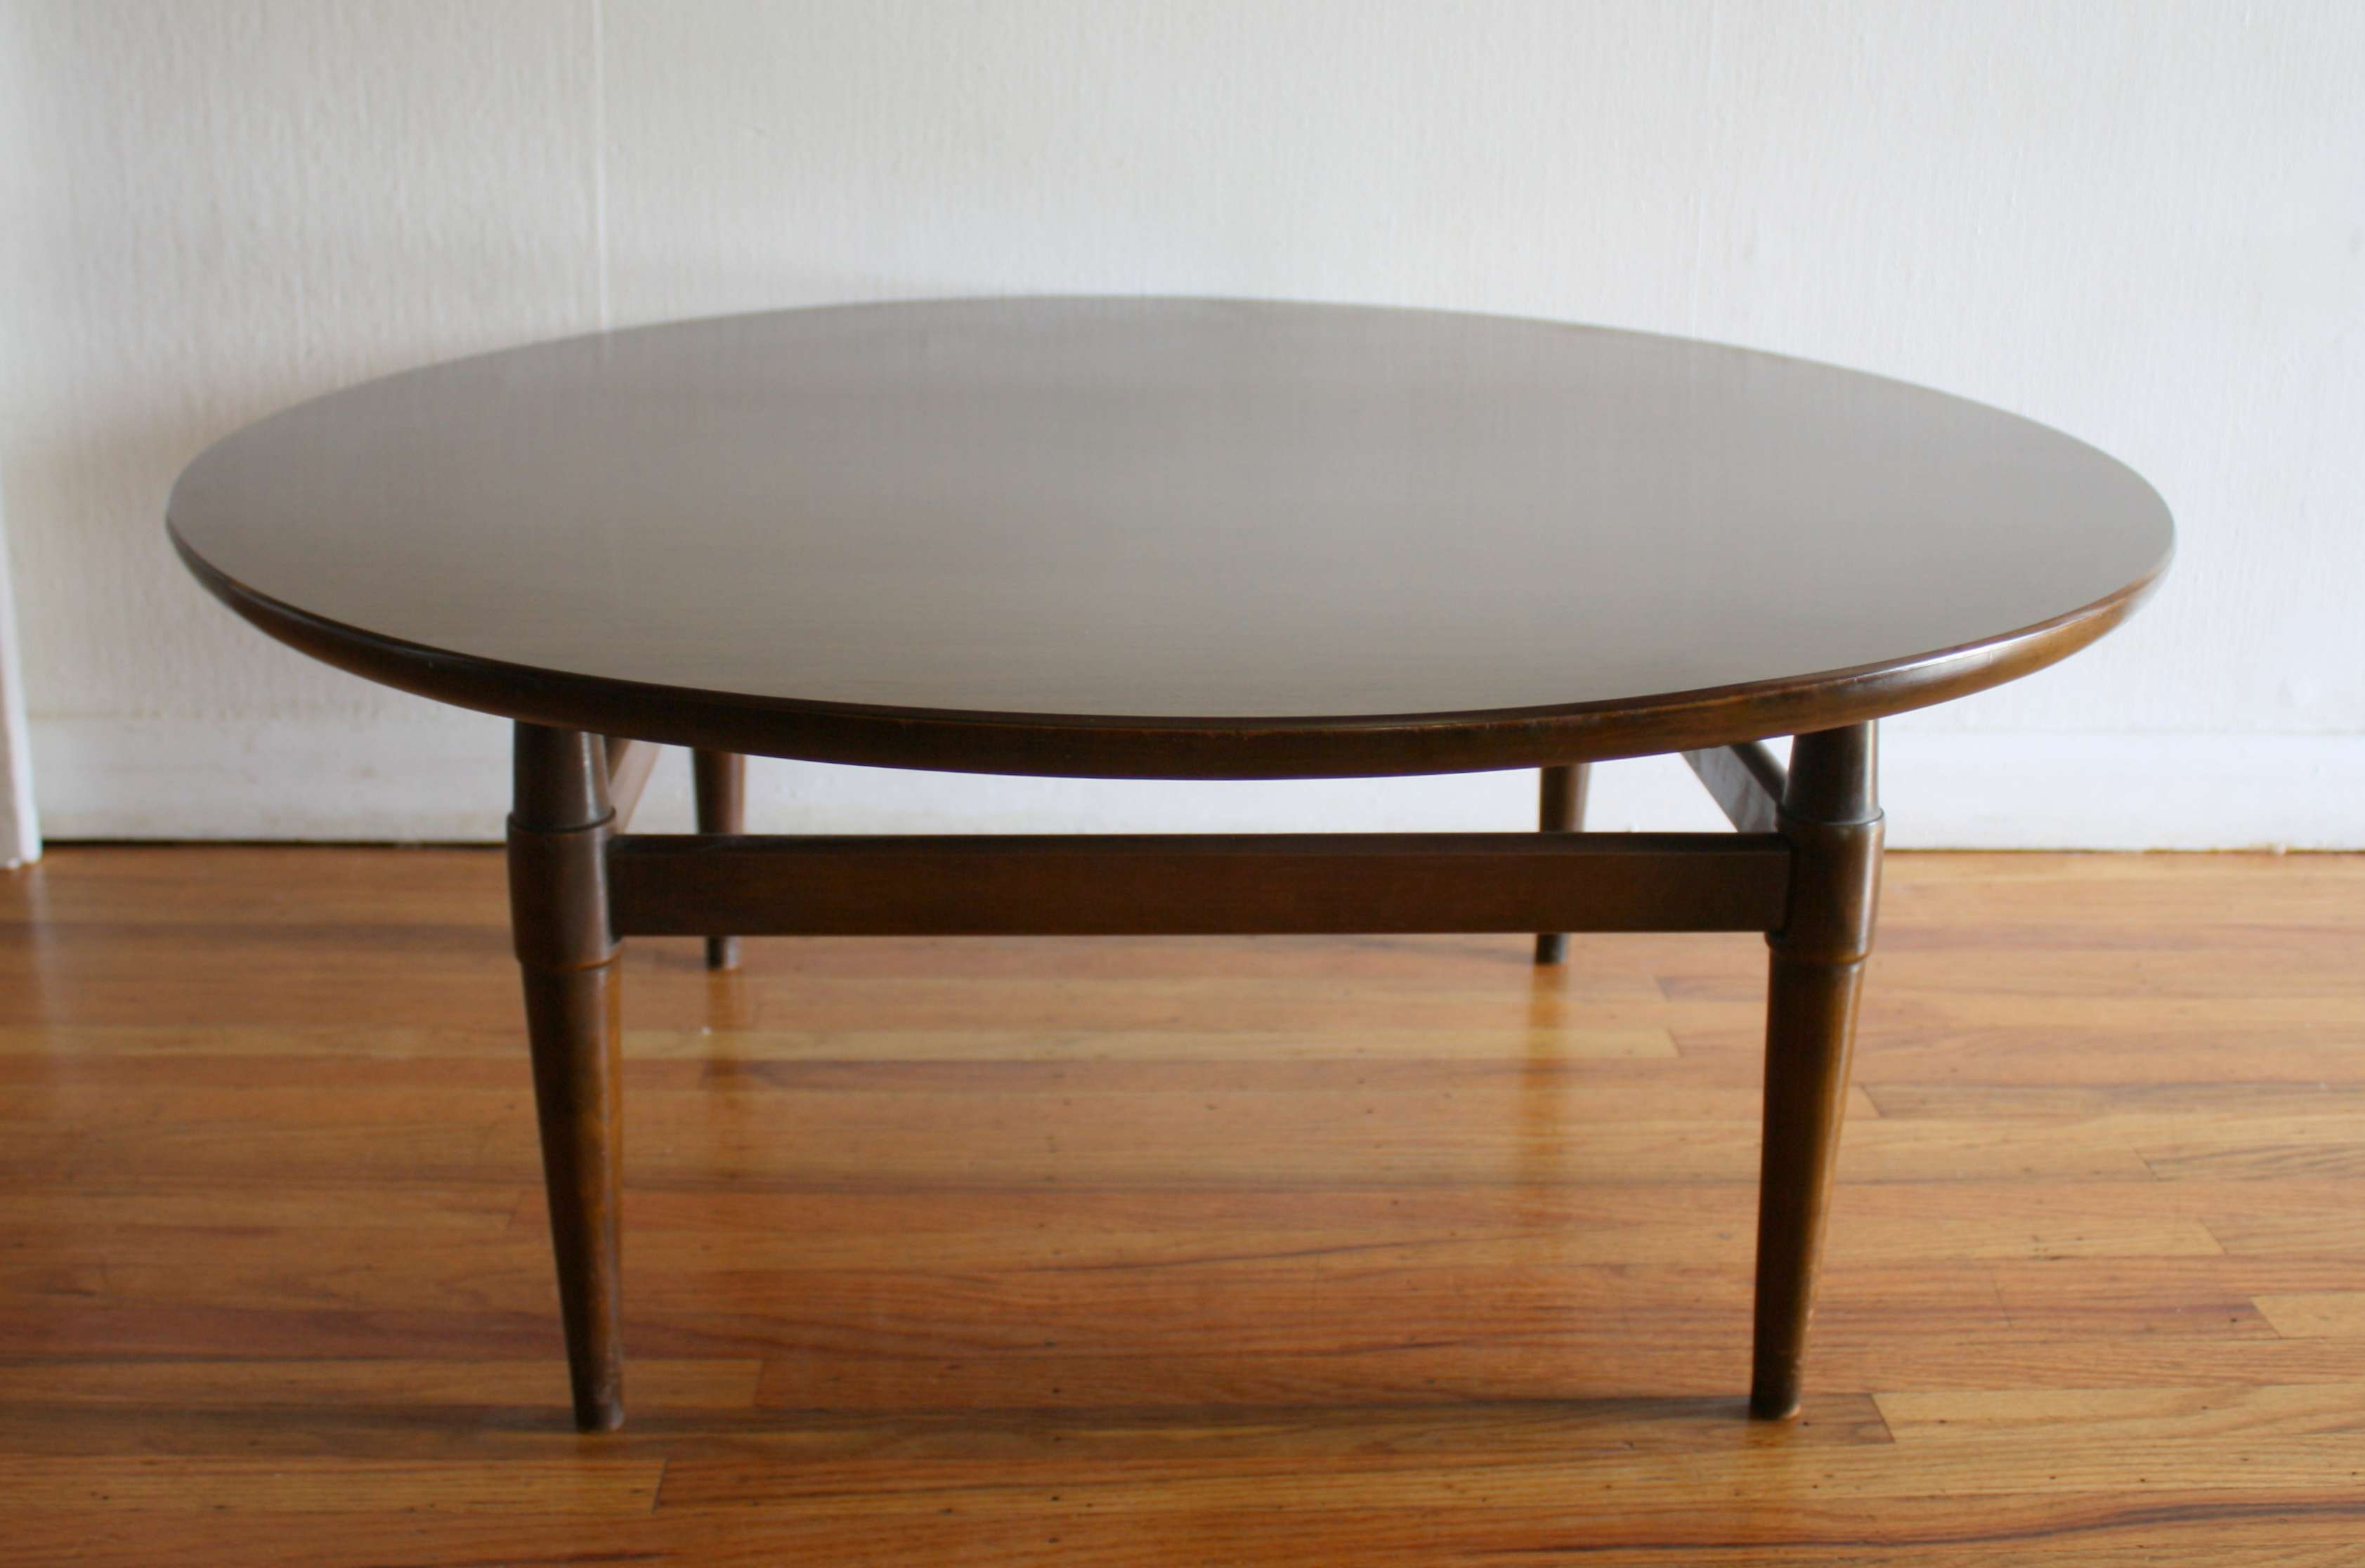 2017 Elephant Glass Coffee Tables In Coffee Tables : Round Glass Top Coffee Table With Metal Base (View 1 of 20)